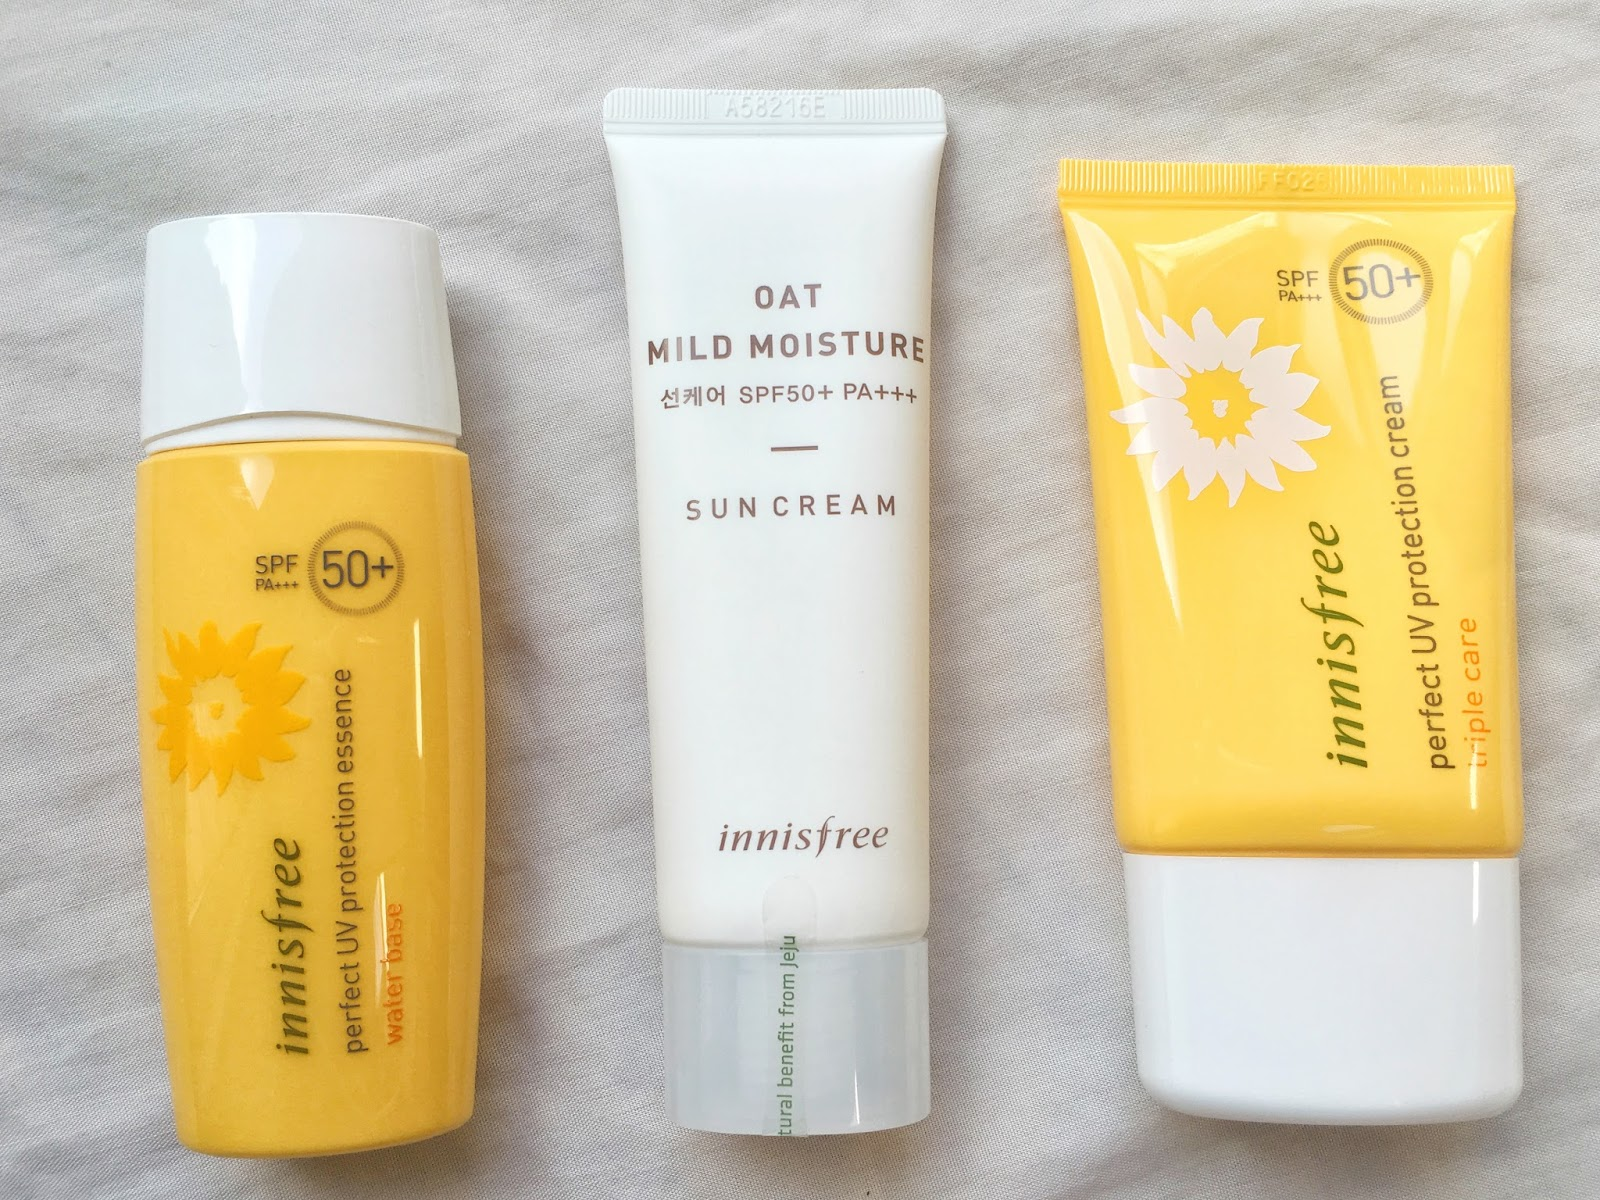 Image result for sunscreen blogspot.com